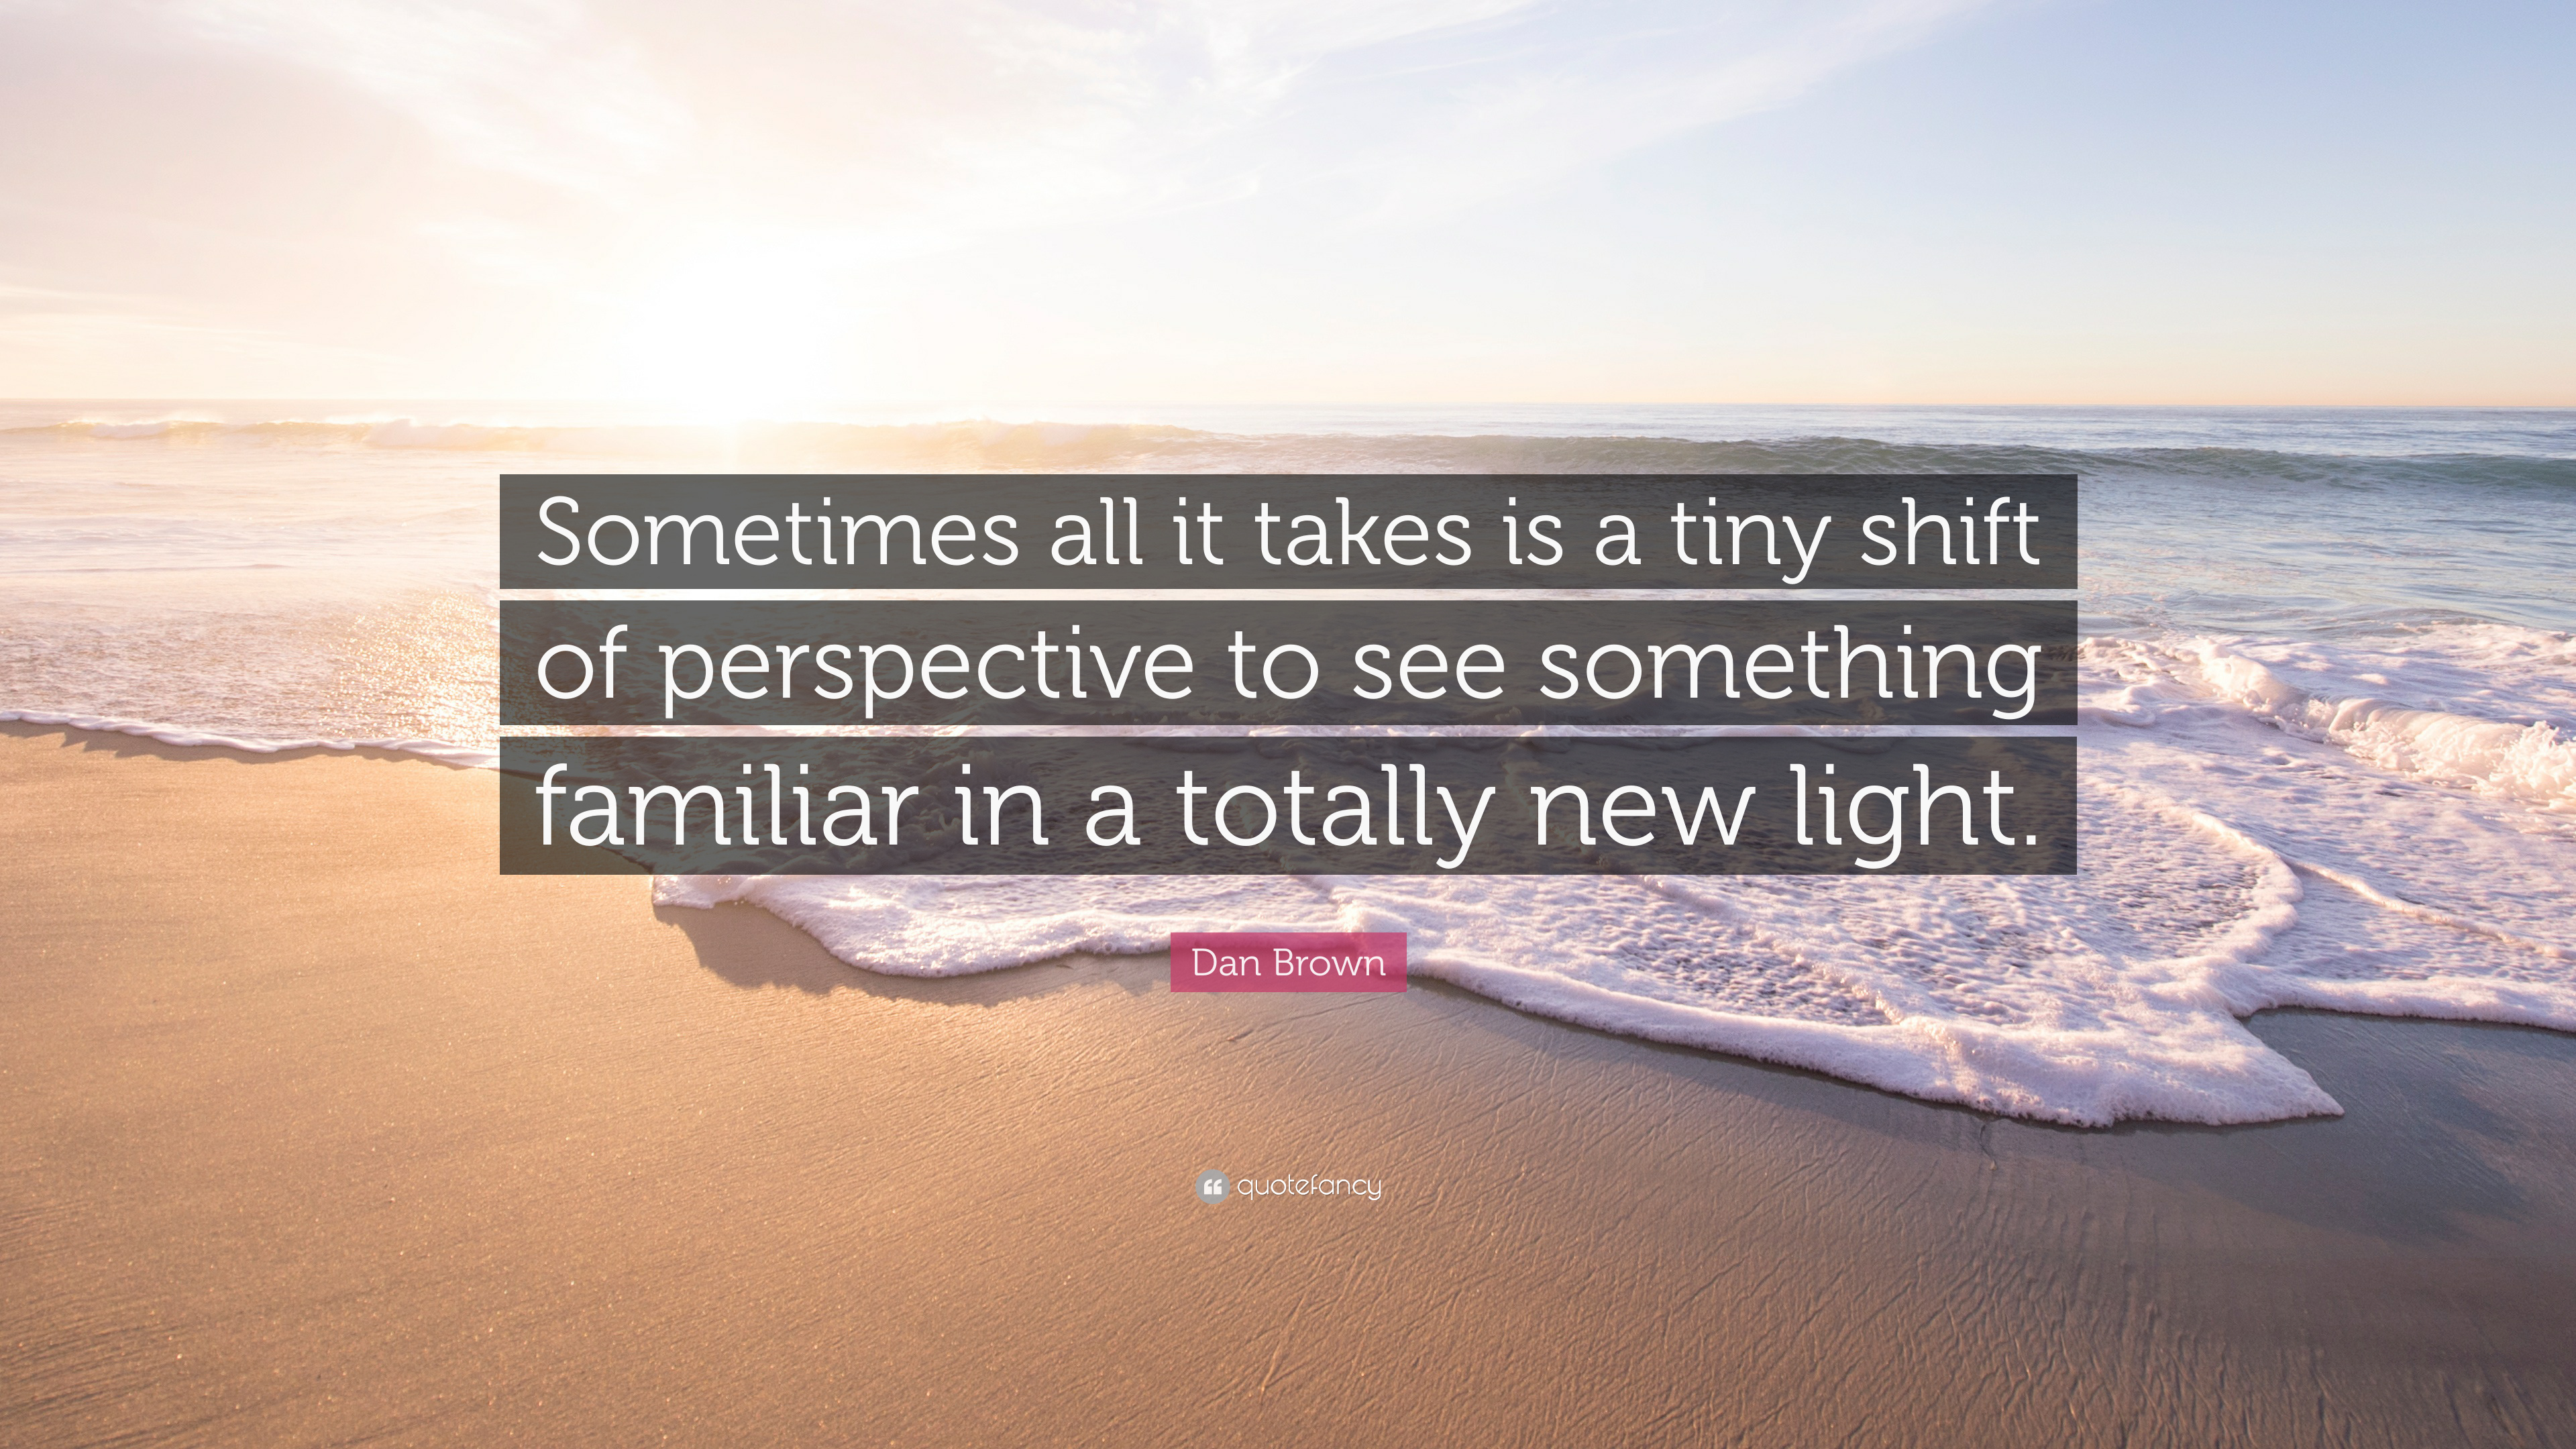 4732235-Dan-Brown-Quote-Sometimes-all-it-takes-is-a-tiny-shift-of.jpg